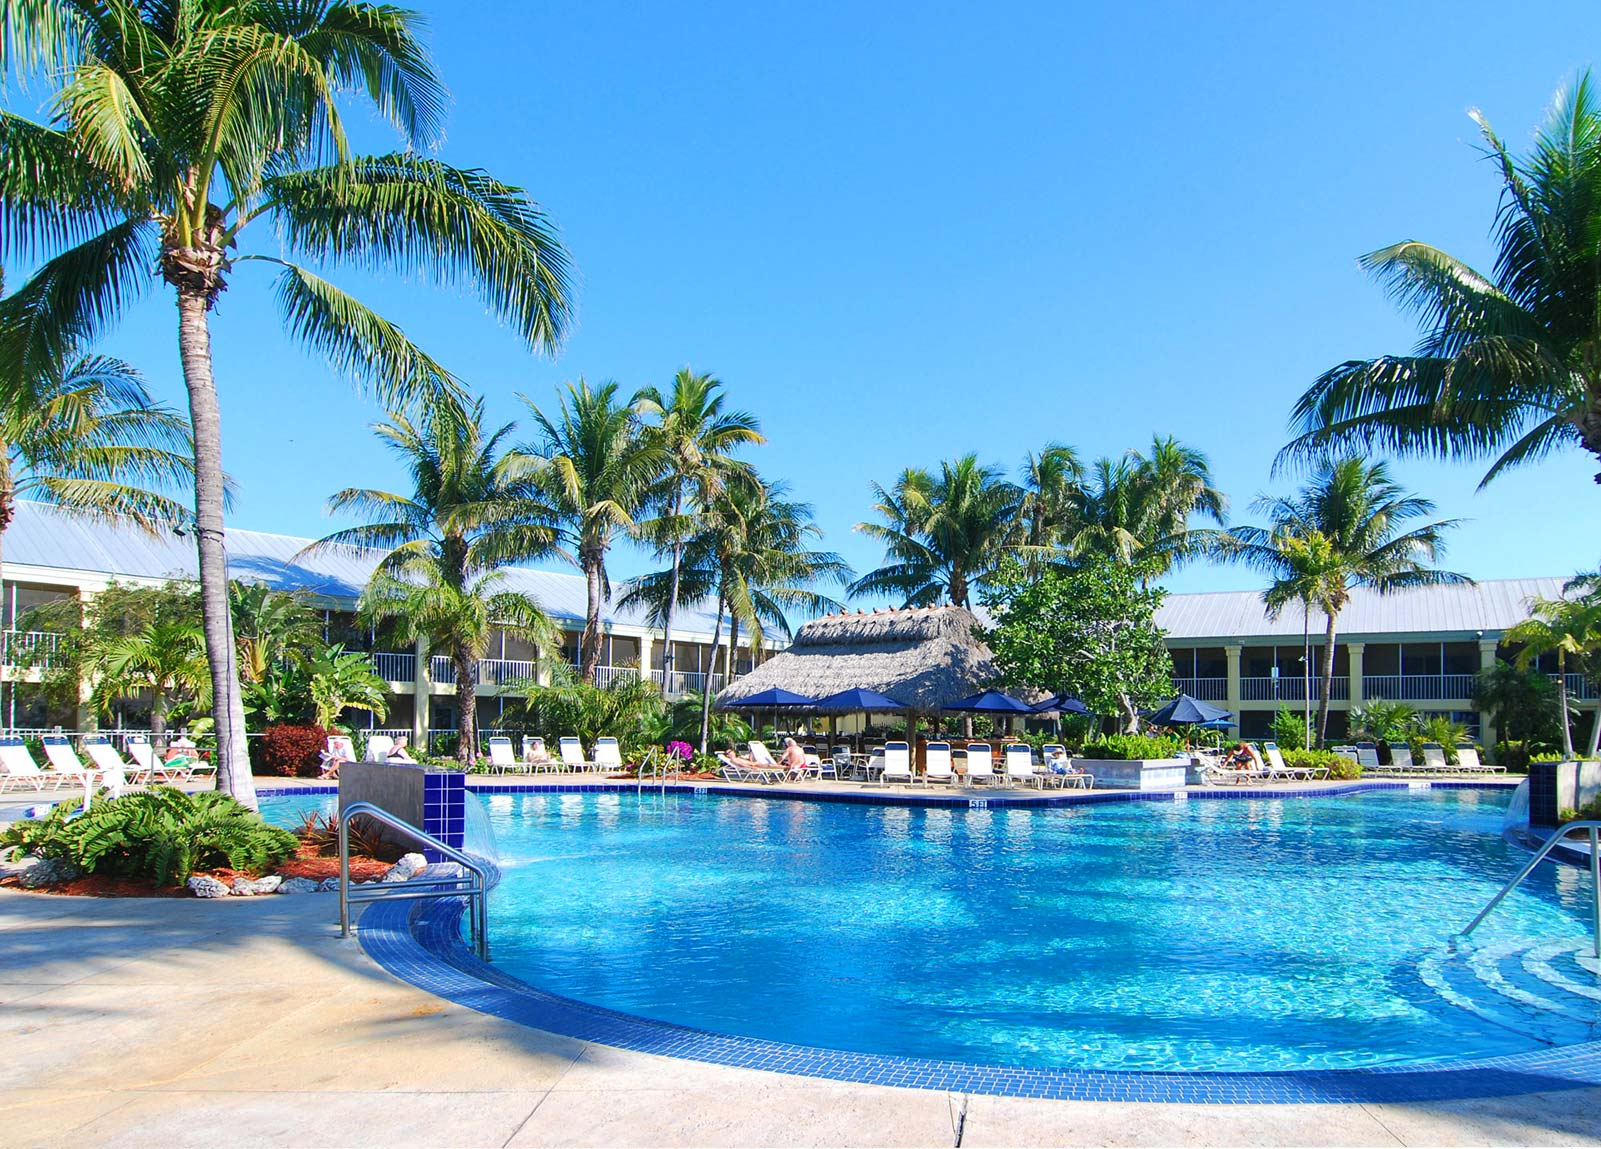 Hotels near Key West Airport